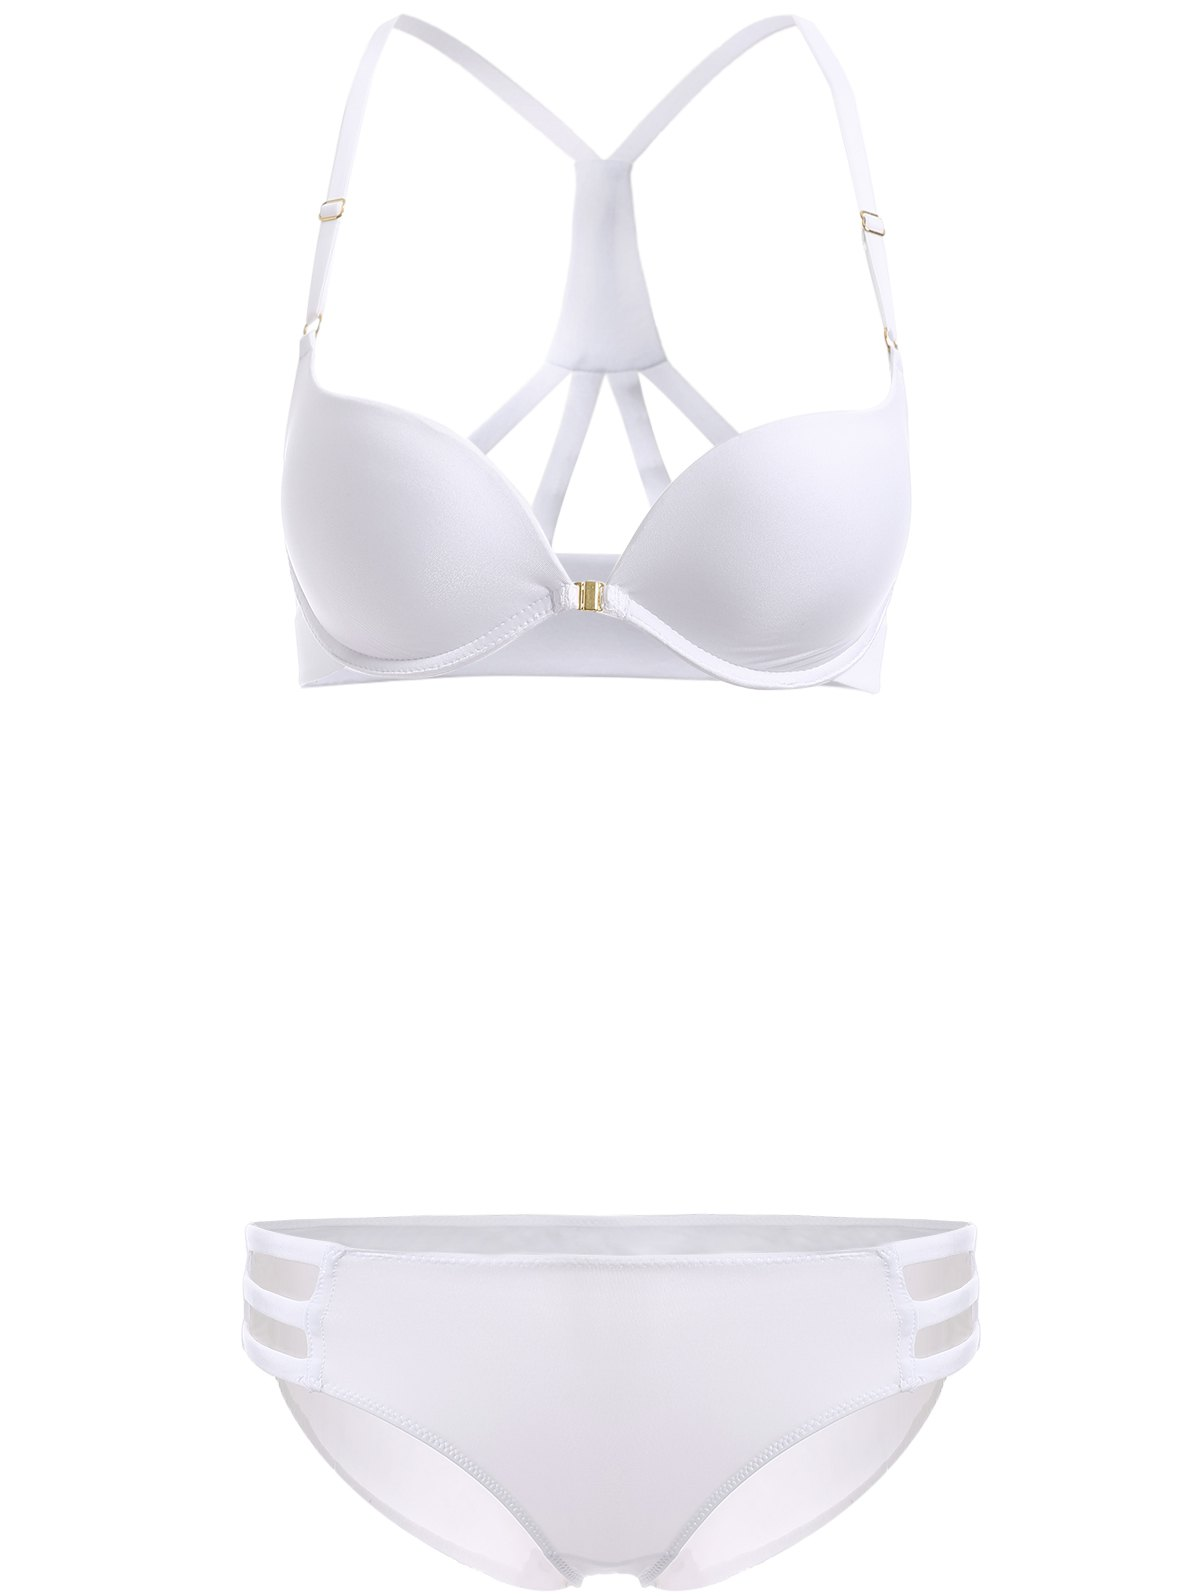 Front Closure Solid Color Push Up Bra Set - WHITE 80B